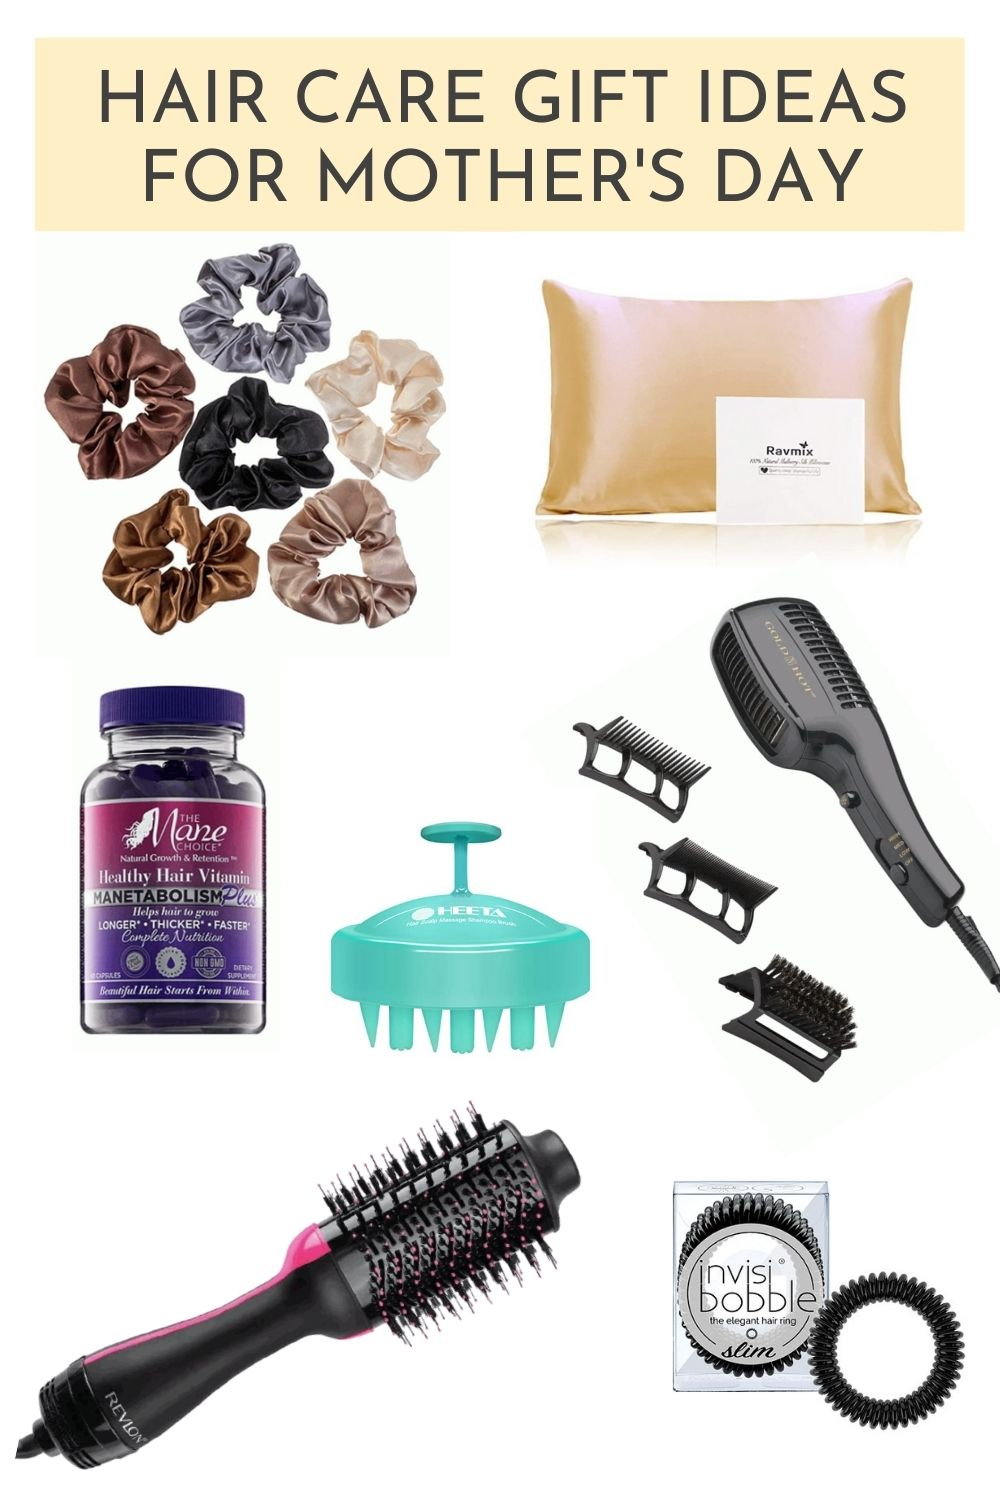 Hair care gifts for Mother's Day | A Relaxed Gal